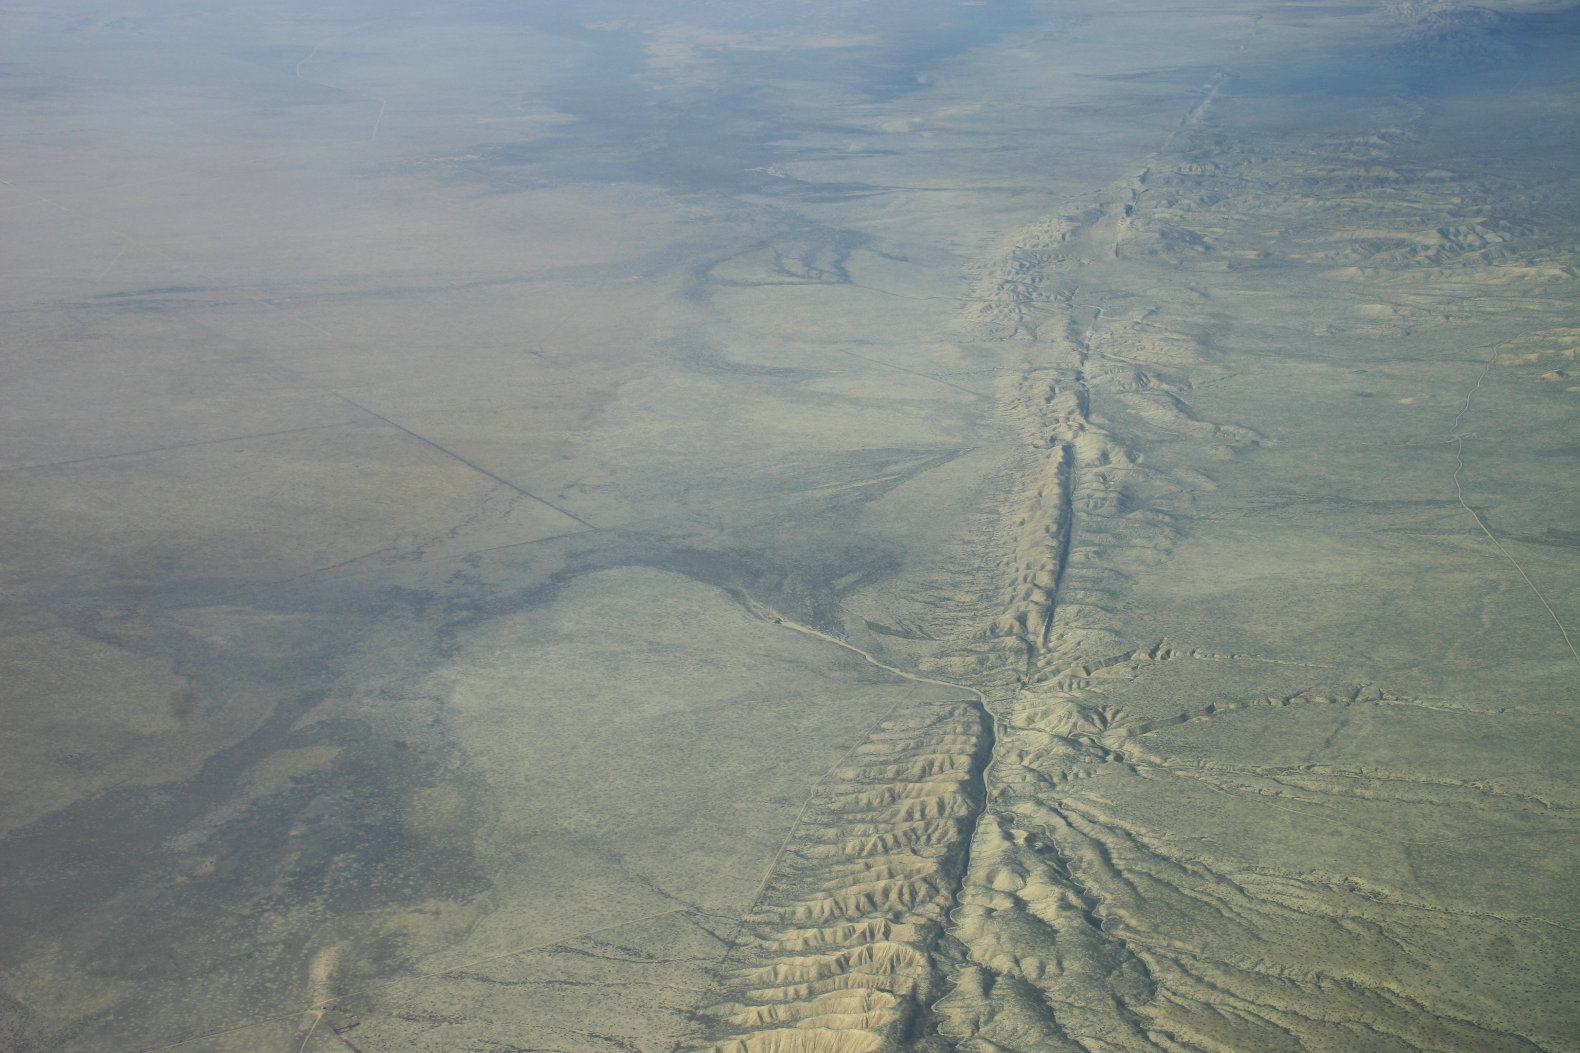 USGS warns California earthquake swarm could set off a massive quake any day now